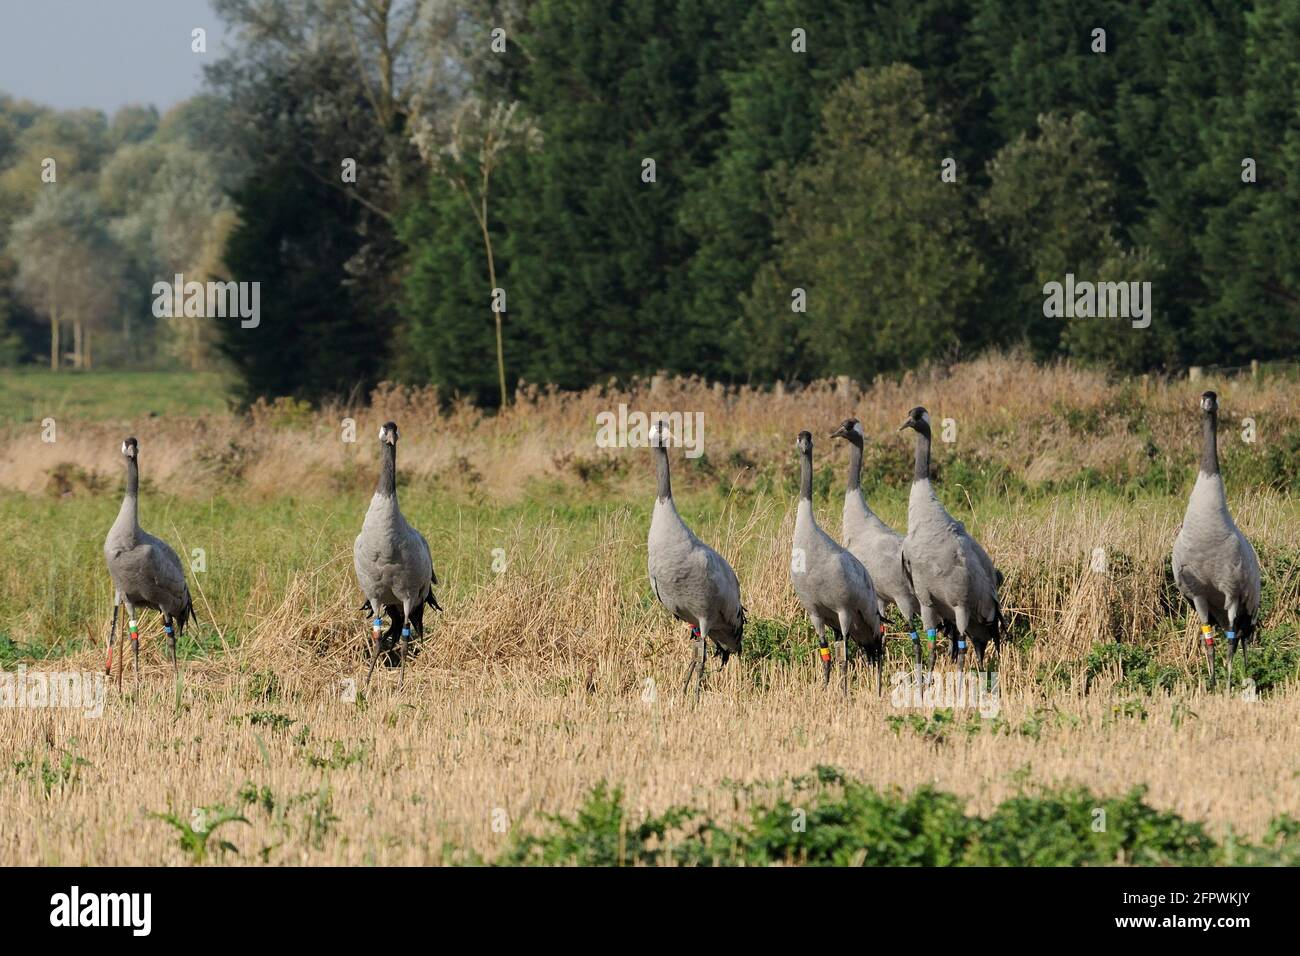 Flock of Common / Eurasian cranes Grus grus, released by the Great Crane Project onto the Somerset Levels and Moors, standing alert in Barley stubble. Stock Photo